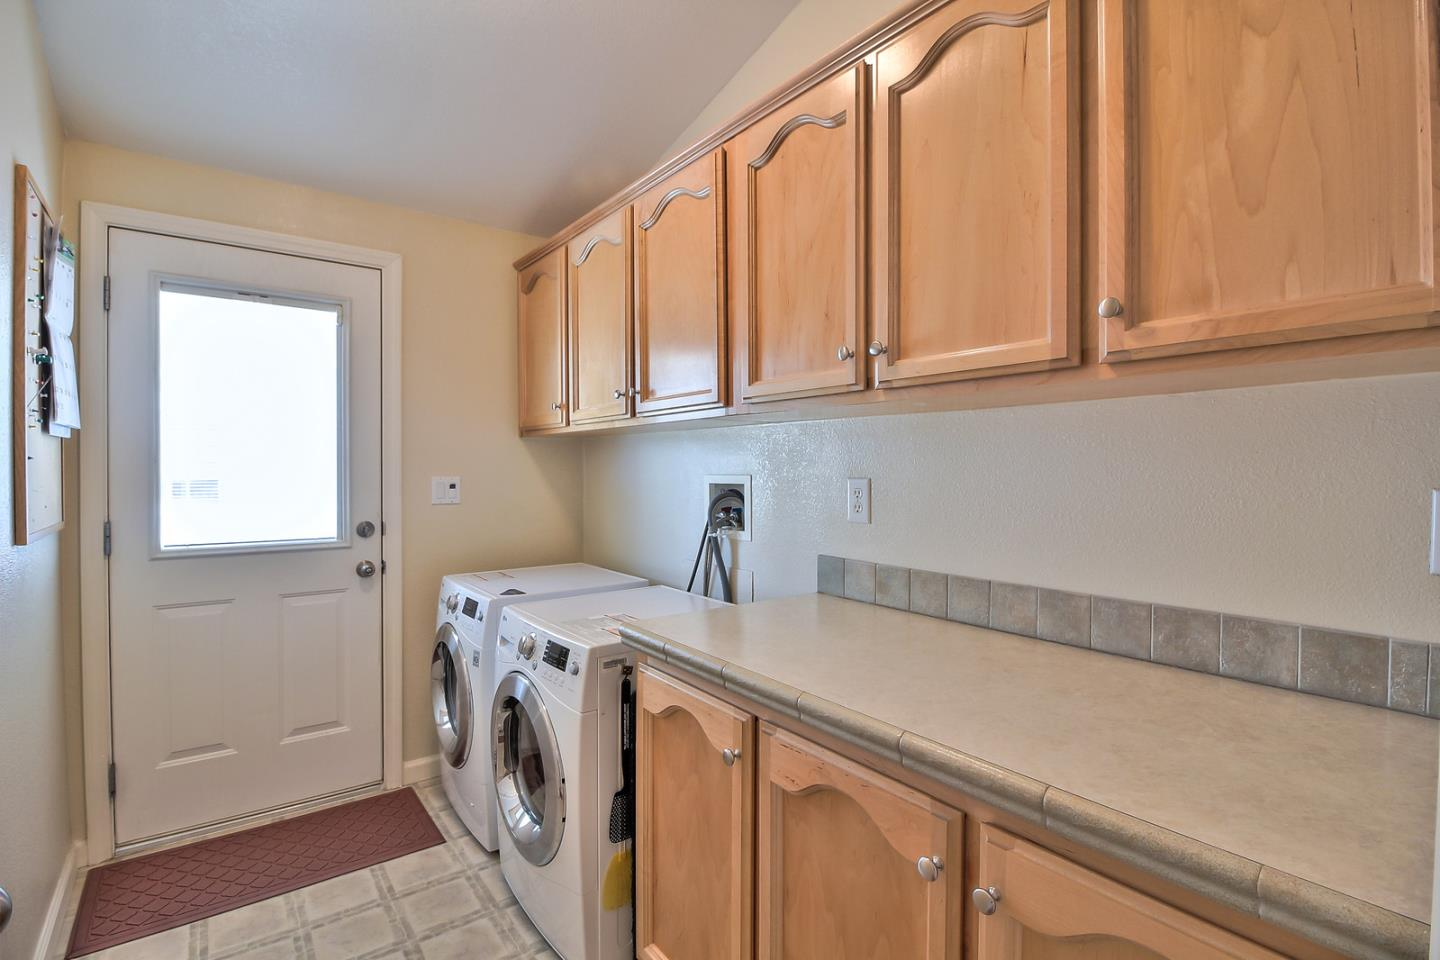 Additional photo for property listing at 524 Millpond Drive 524 Millpond Drive San Jose, Kalifornien 95125 Vereinigte Staaten